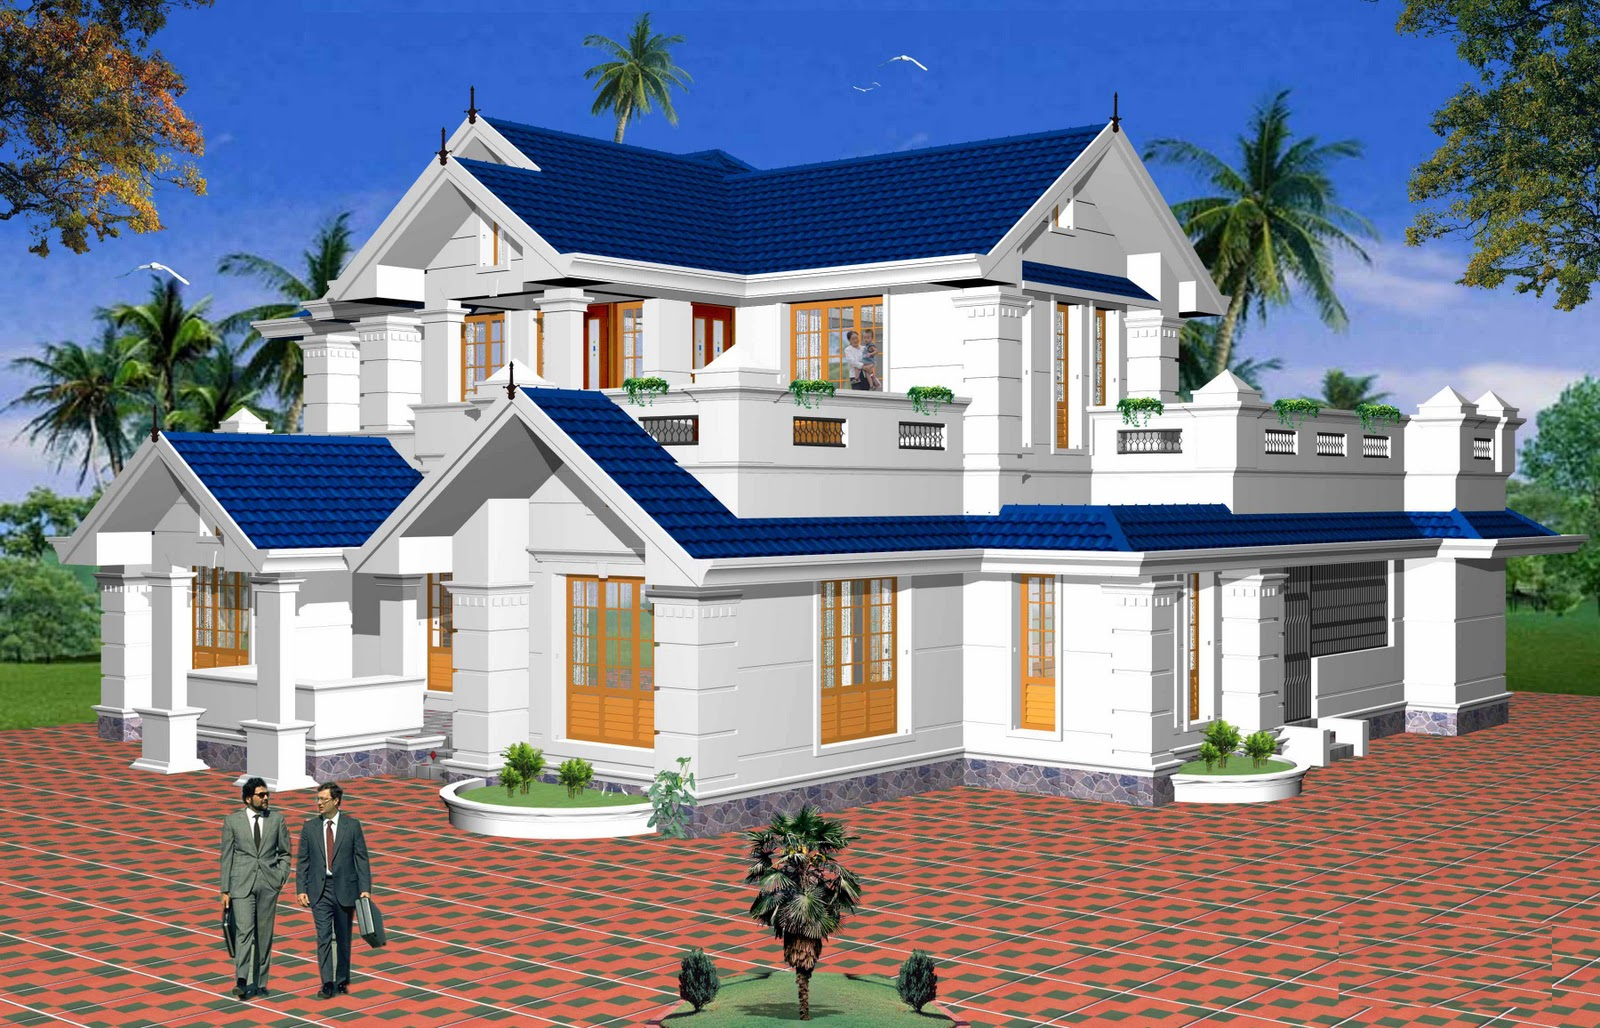 Fabulous Architectural Design Home House Plans 1600 x 1028 · 451 kB · jpeg